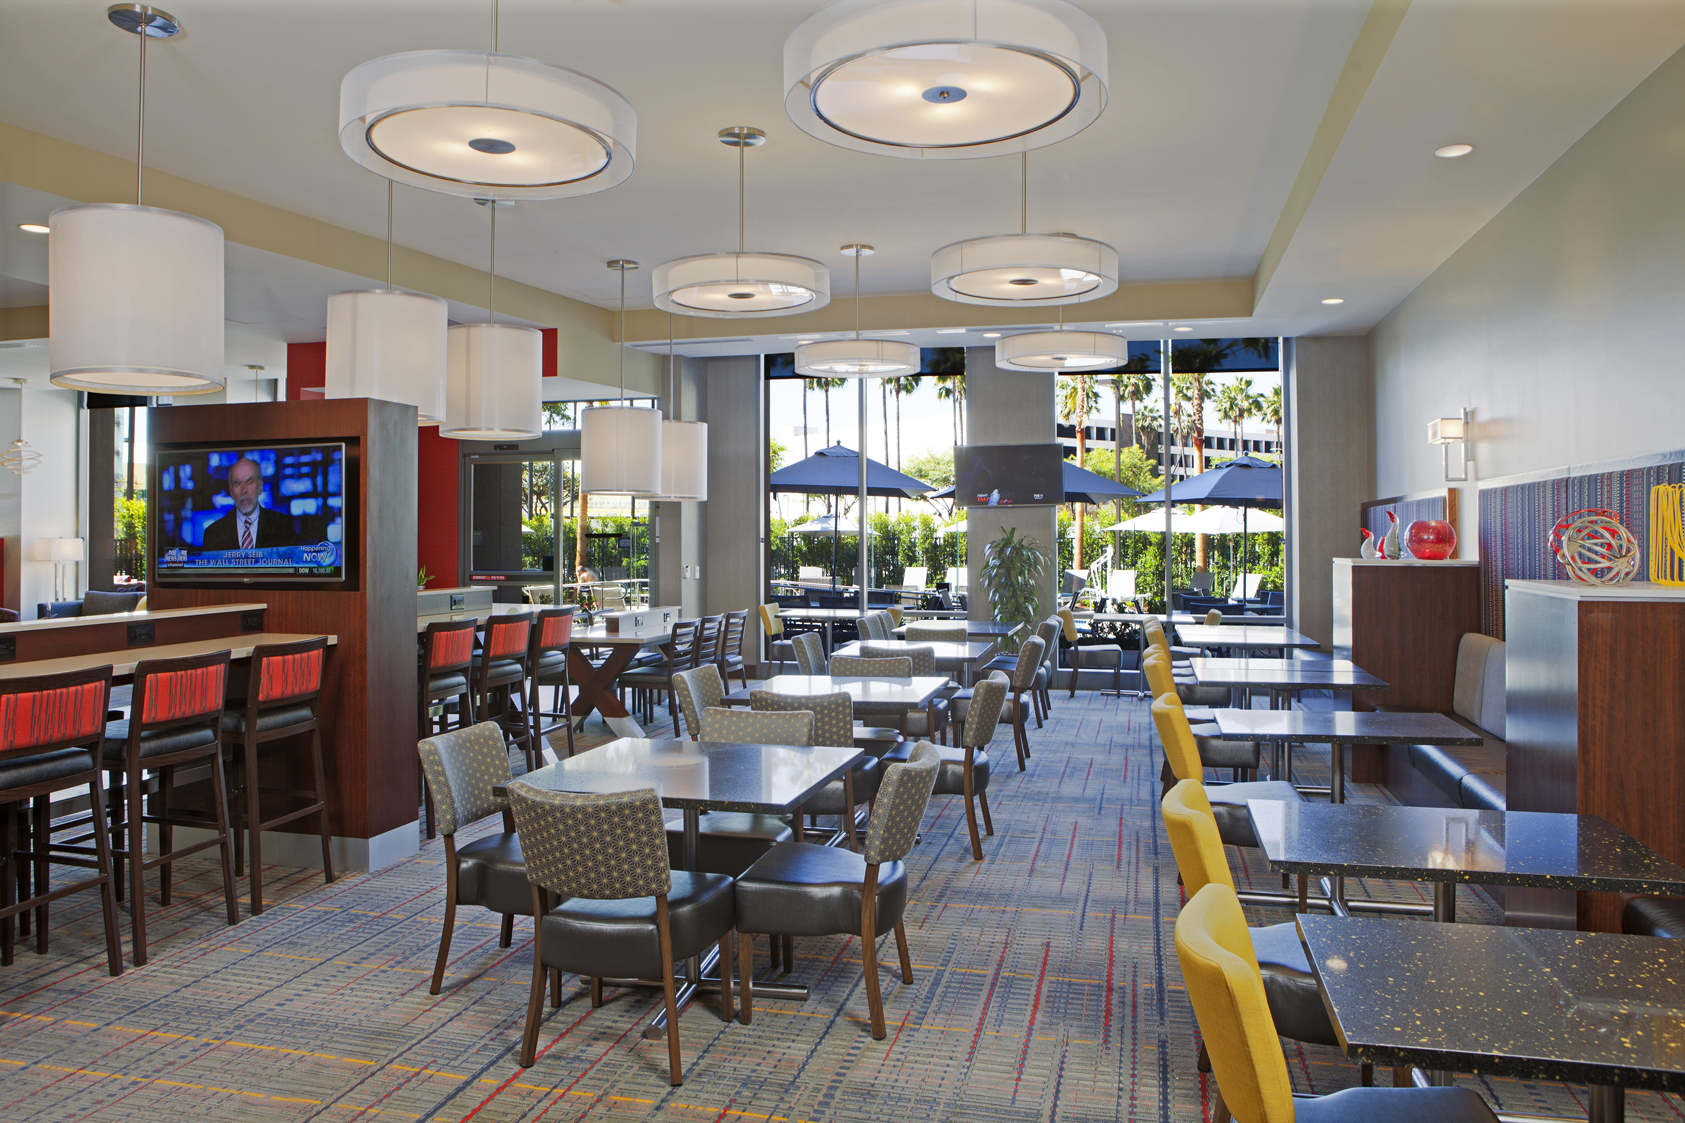 https://www.hotelsbyday.com/_data/default-hotel_image/0/2253/32-laxax-lobby-seating.jpg